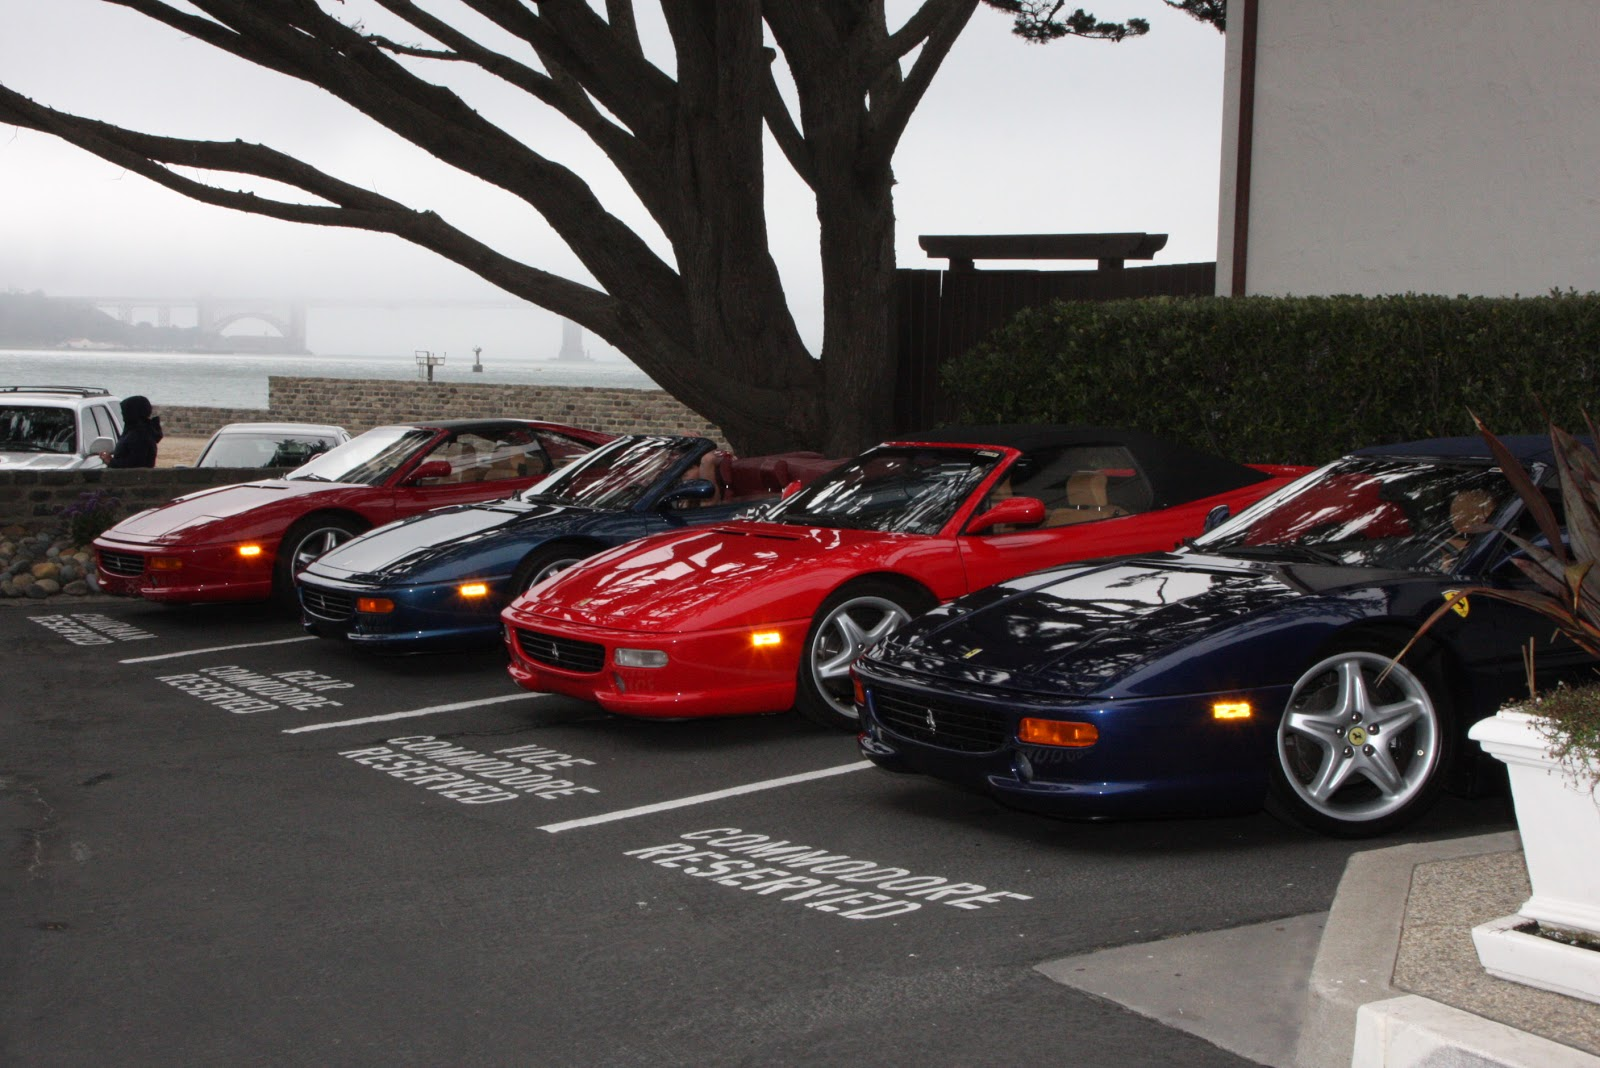 san francisco motorsports ferrari service bay area. Cars Review. Best American Auto & Cars Review